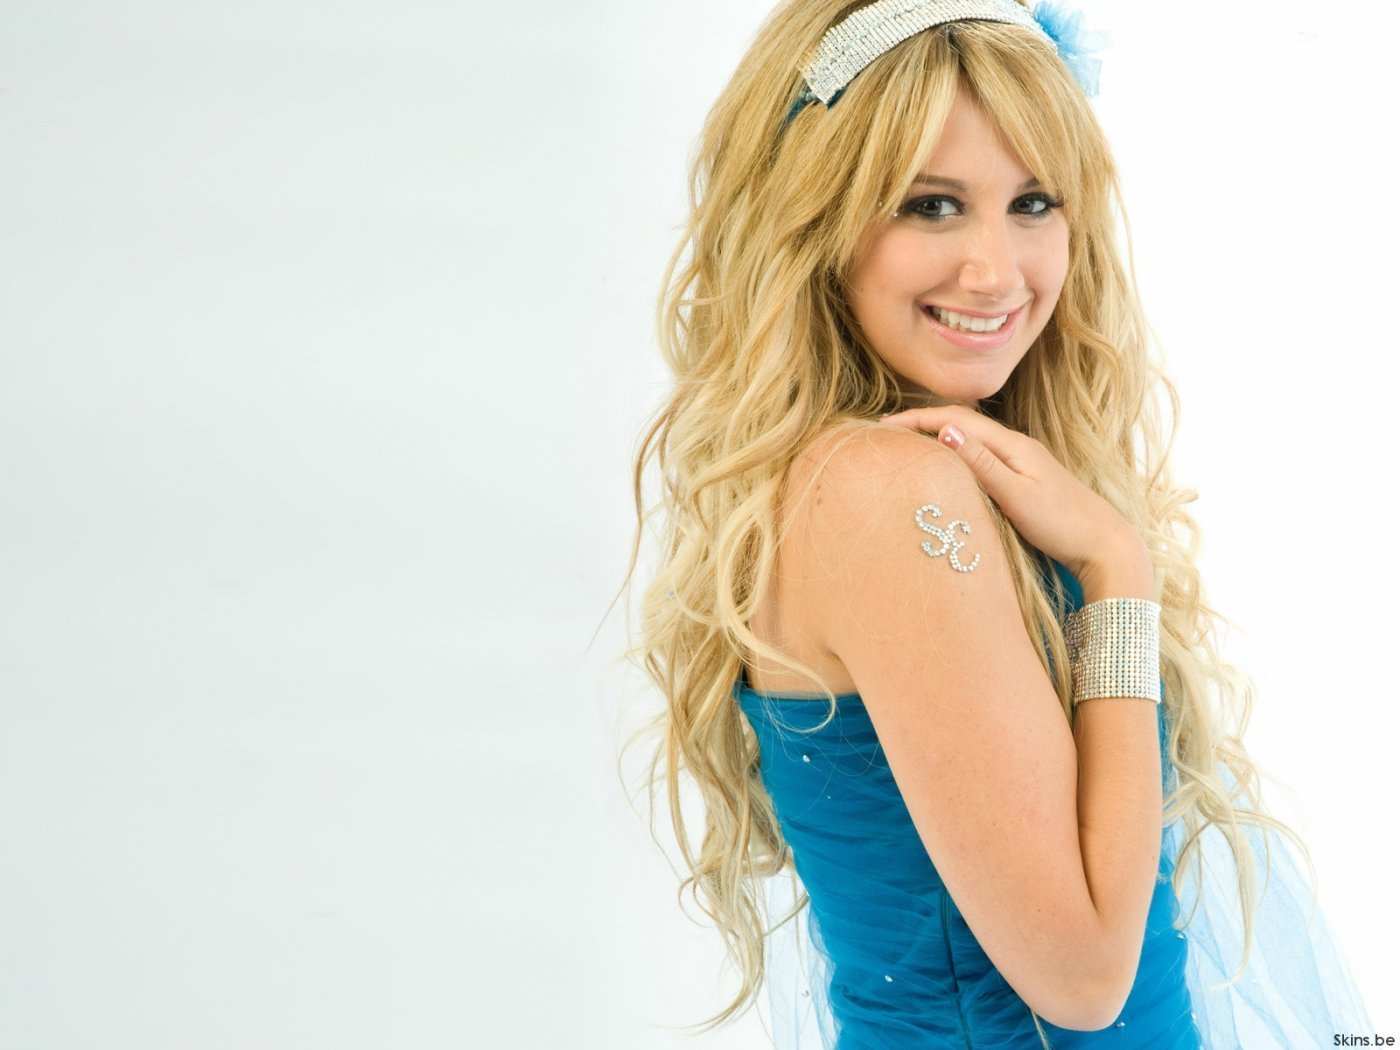 1400x1050 - Ashley Tisdale Wallpapers 3